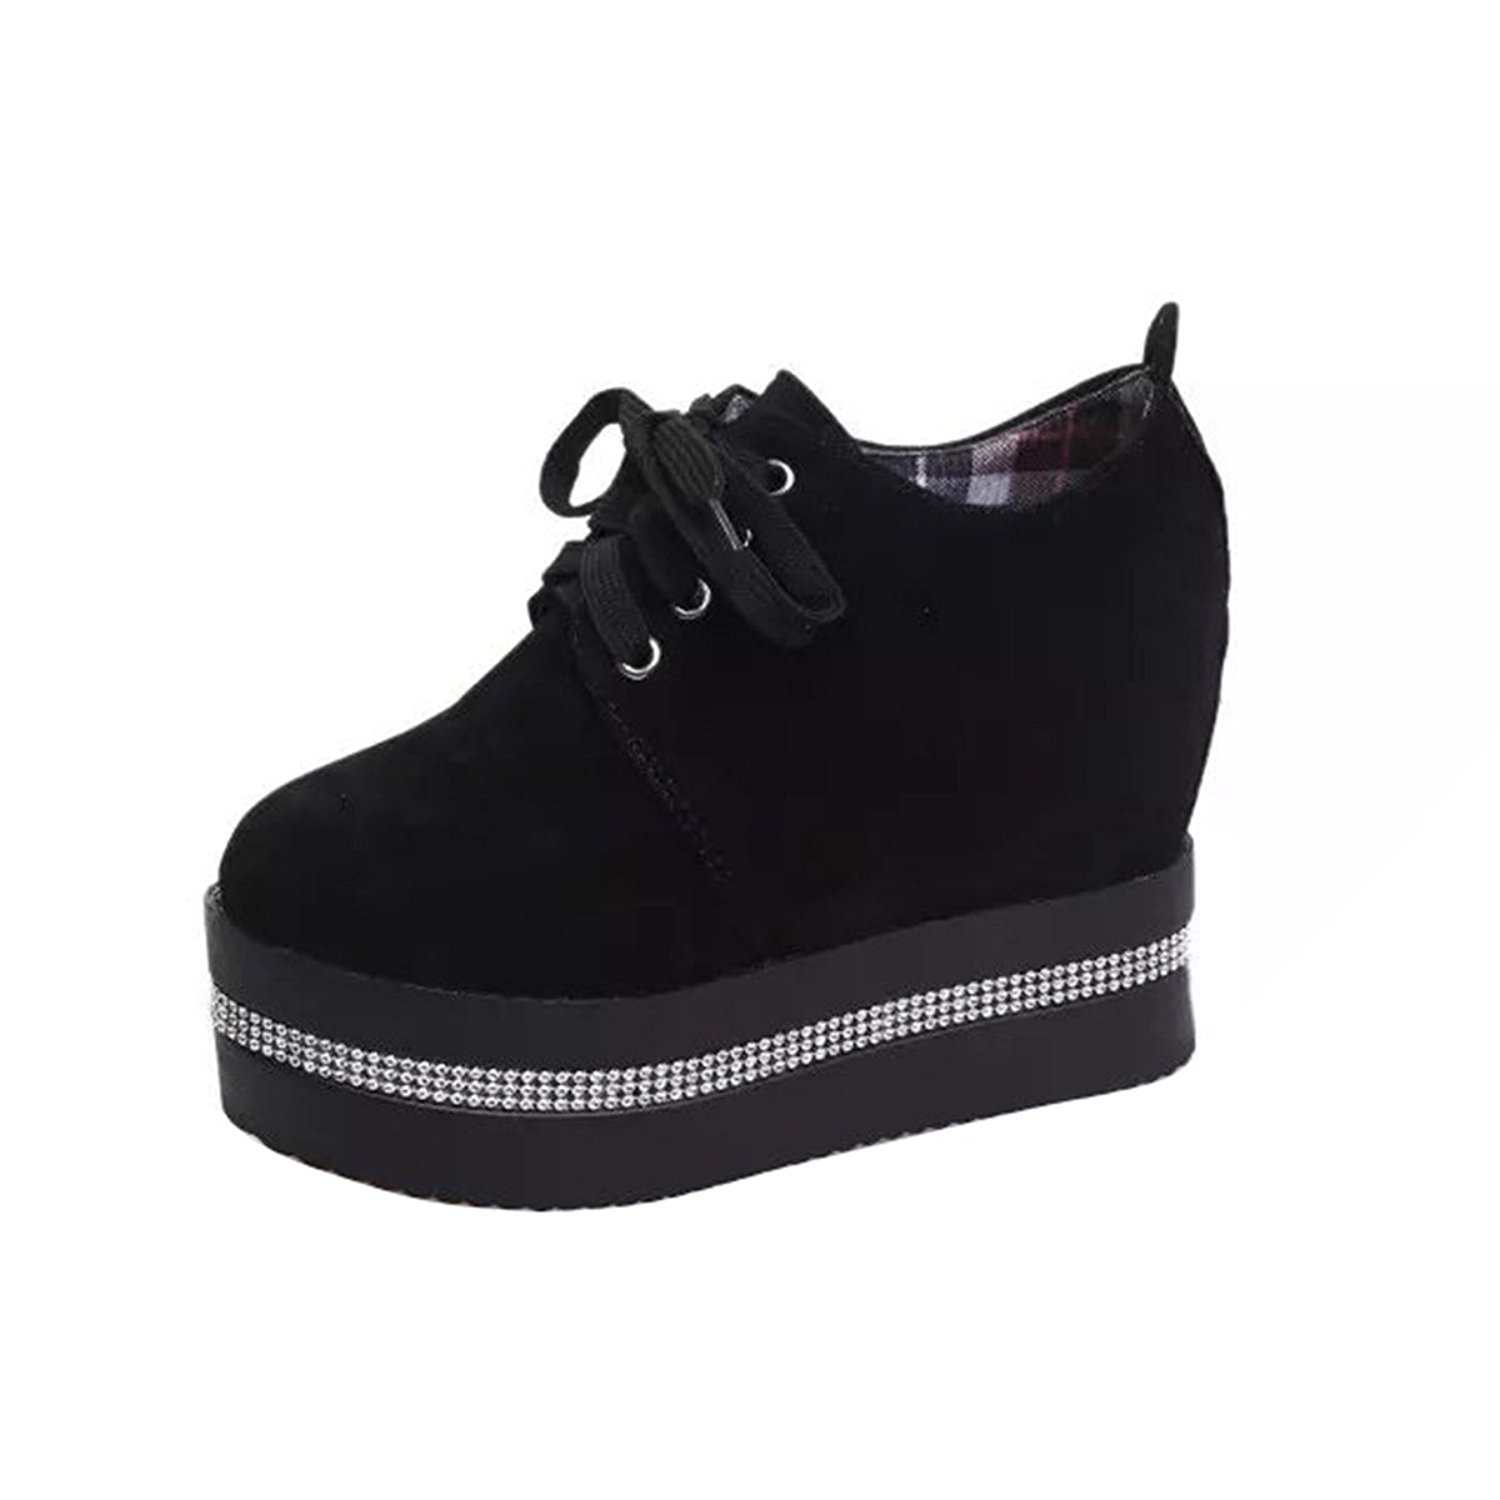 VFDB Fashion Rhinestone Platform Creepers Womens Faux Suede Lace-up Oxford Shoes